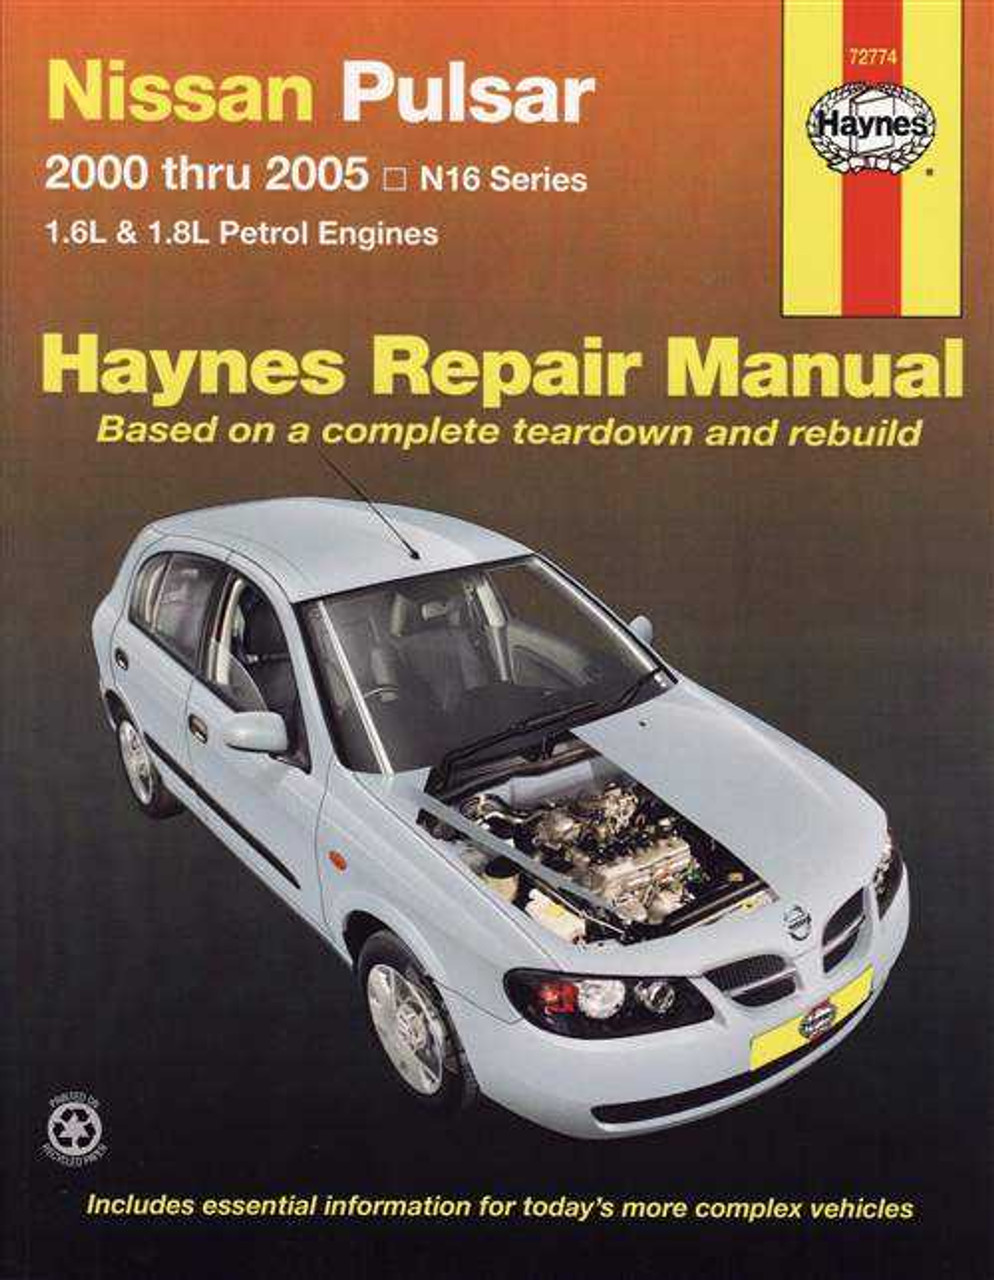 1996 nissan pulsar workshop manual